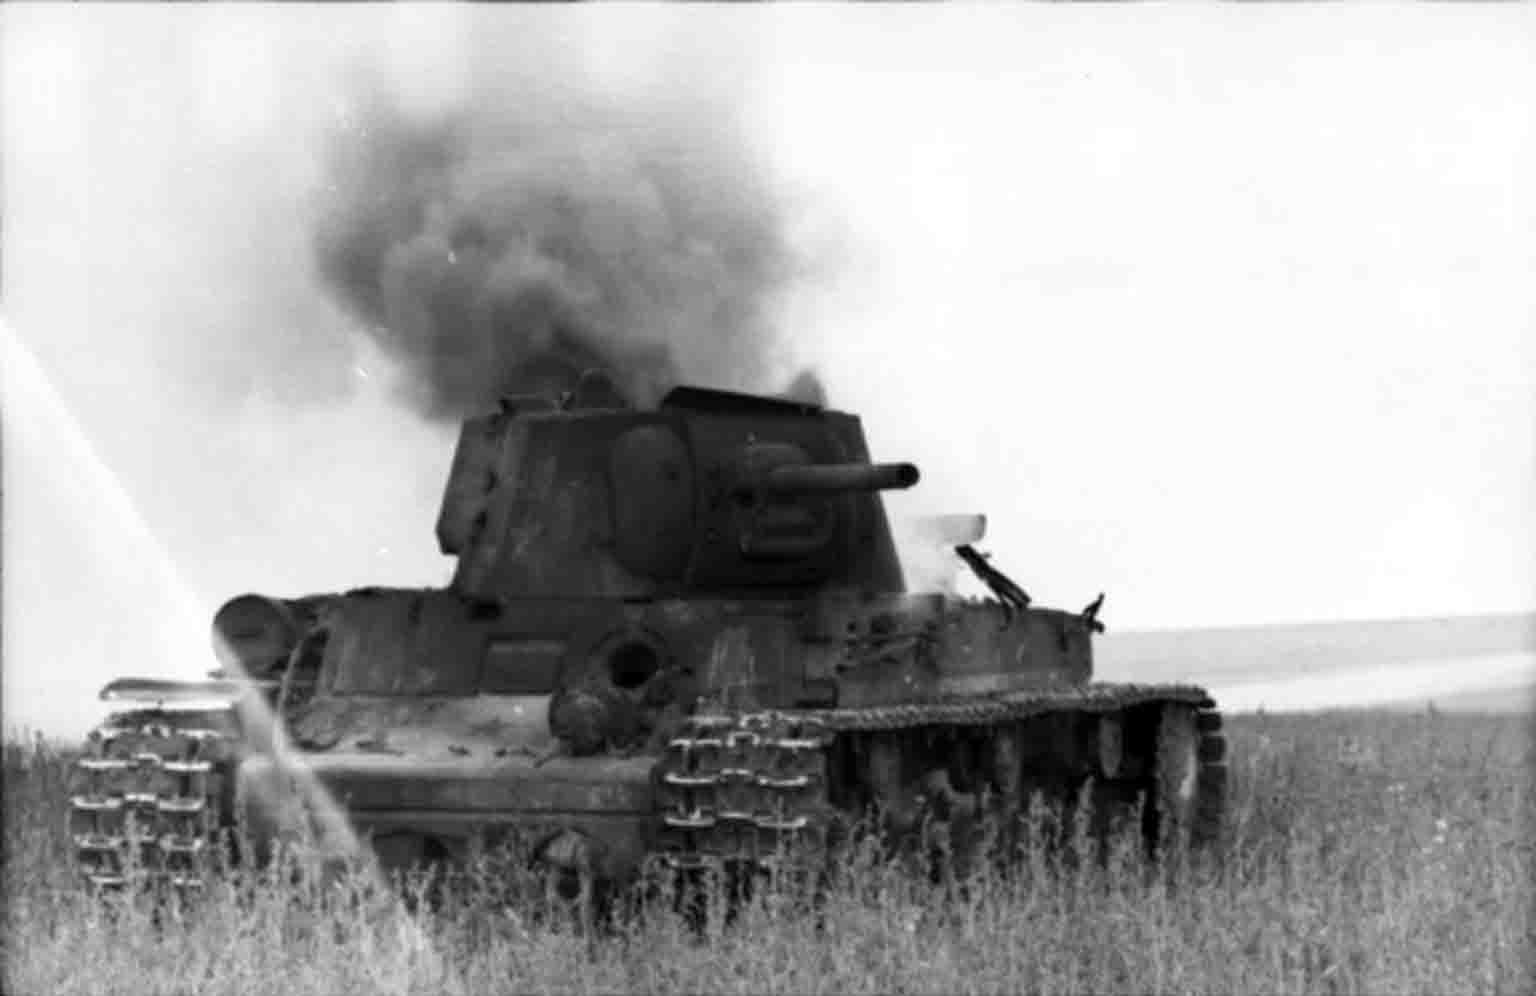 World War 2 - KV-1